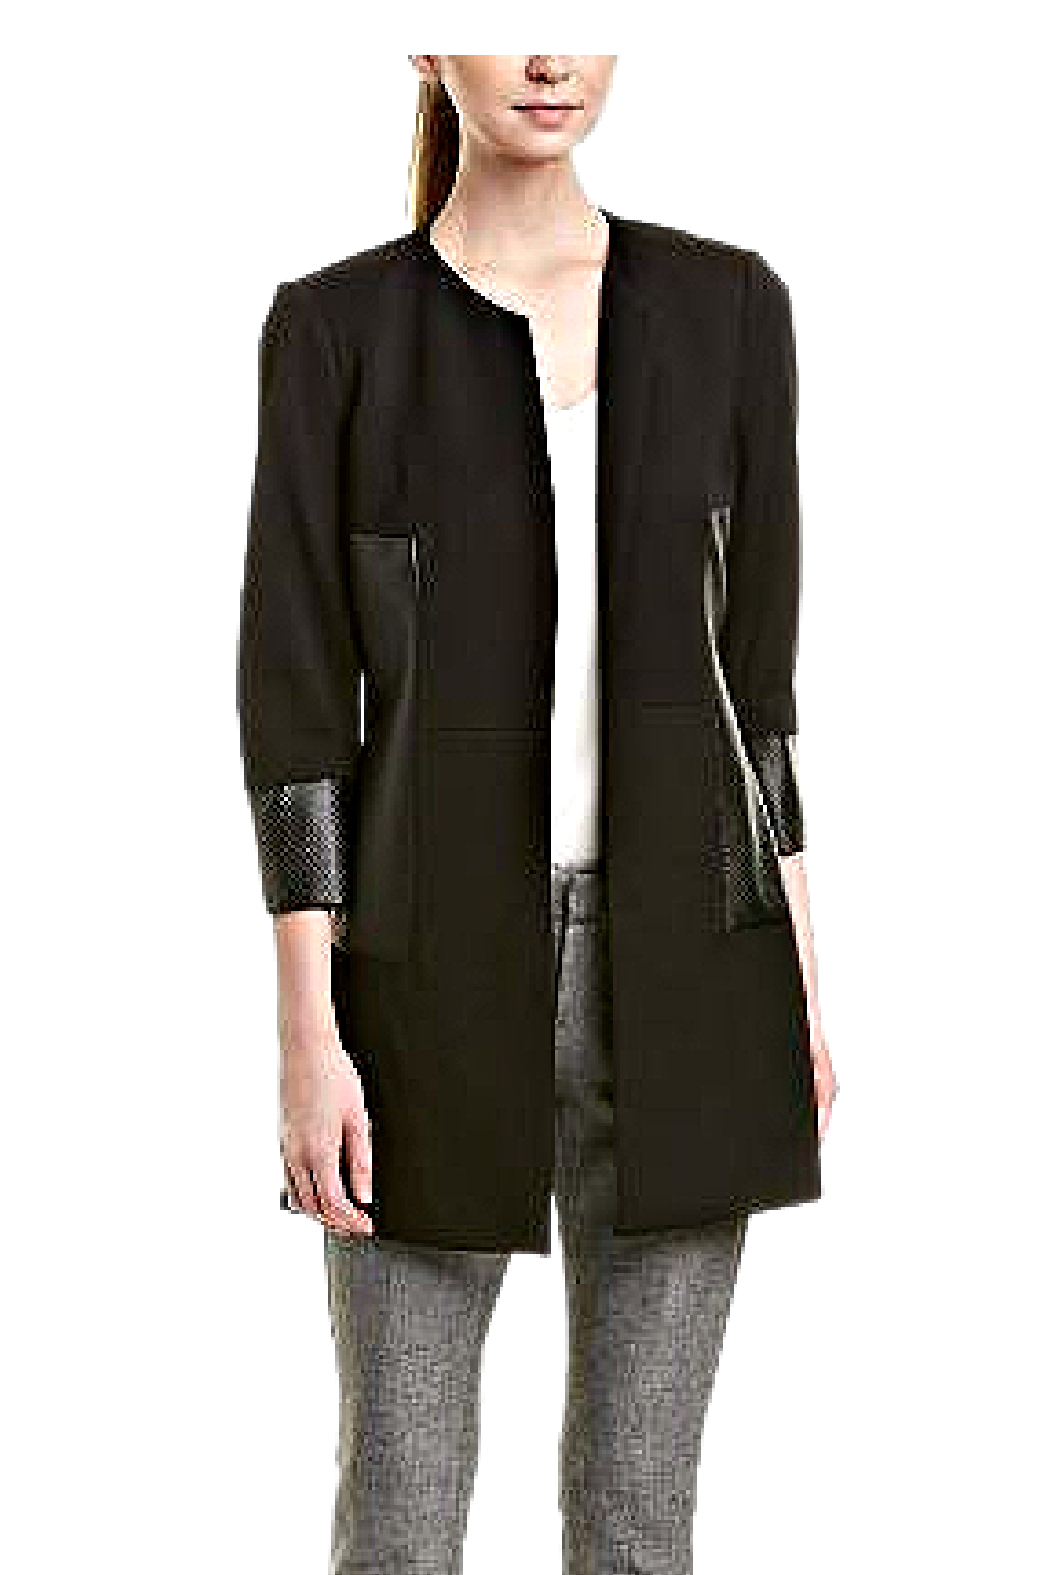 INSIGHT NYC Black Ponte Knit Car Coat - Front Cropped Image